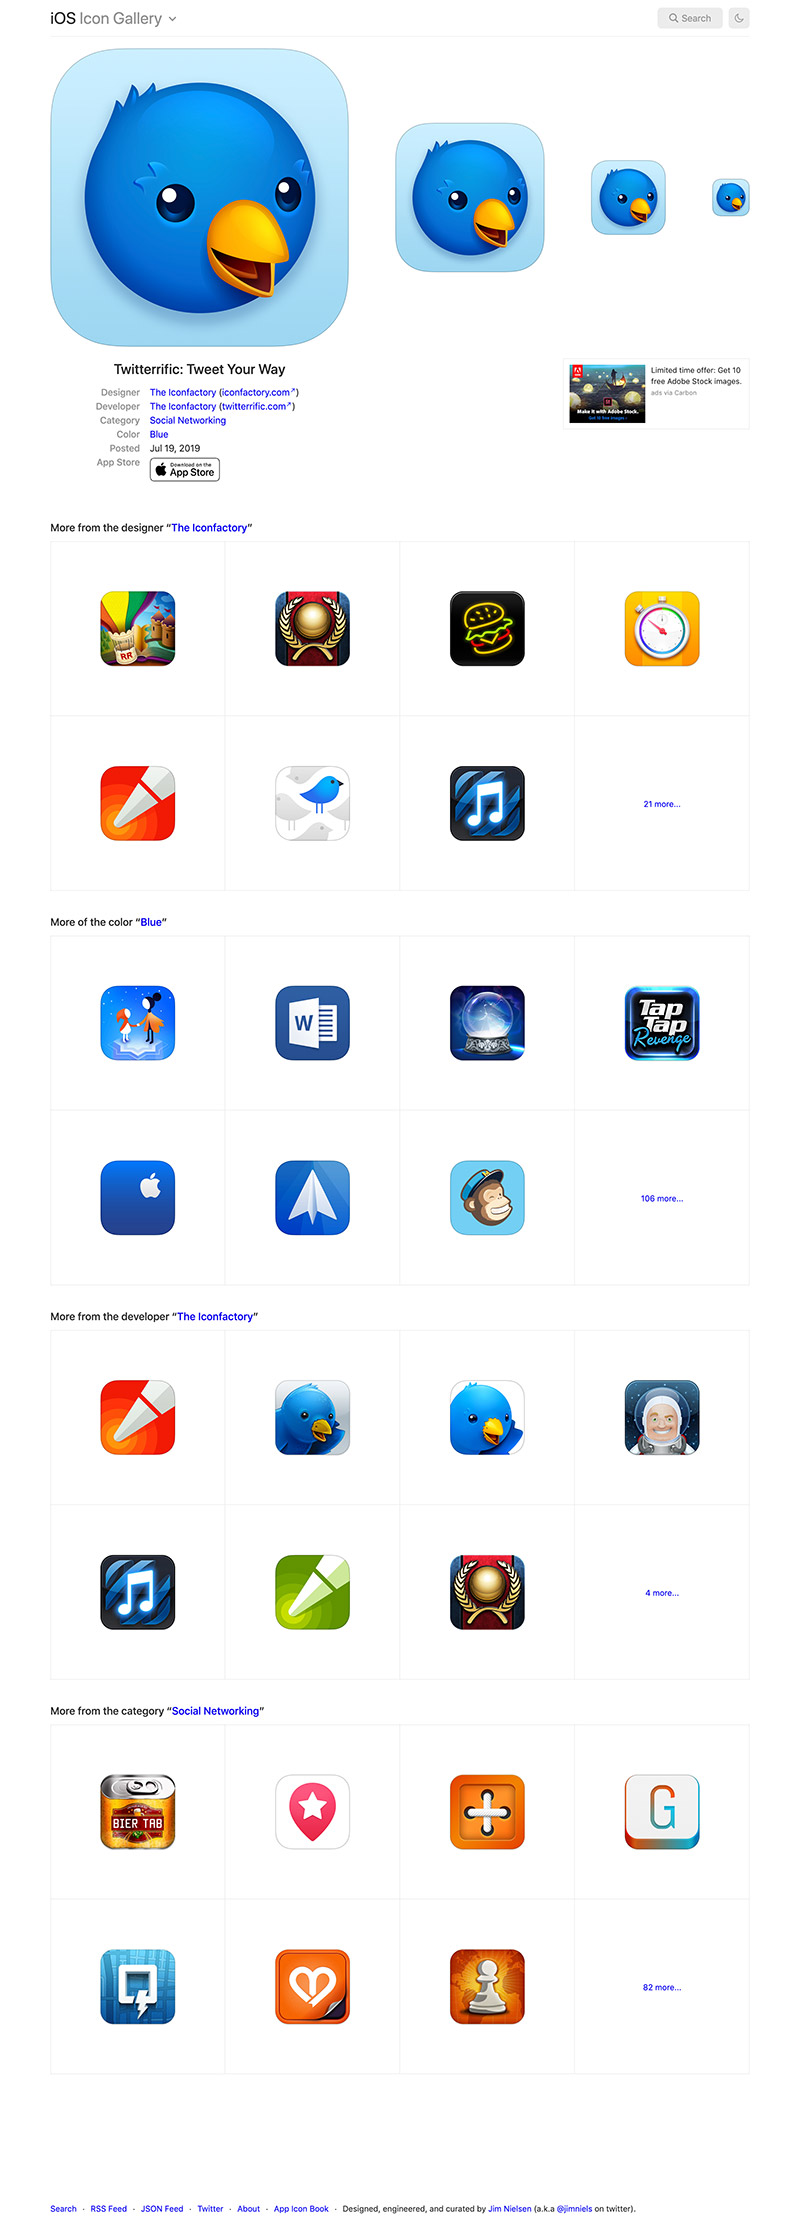 Screenshot of old icon view page for iosicongallery